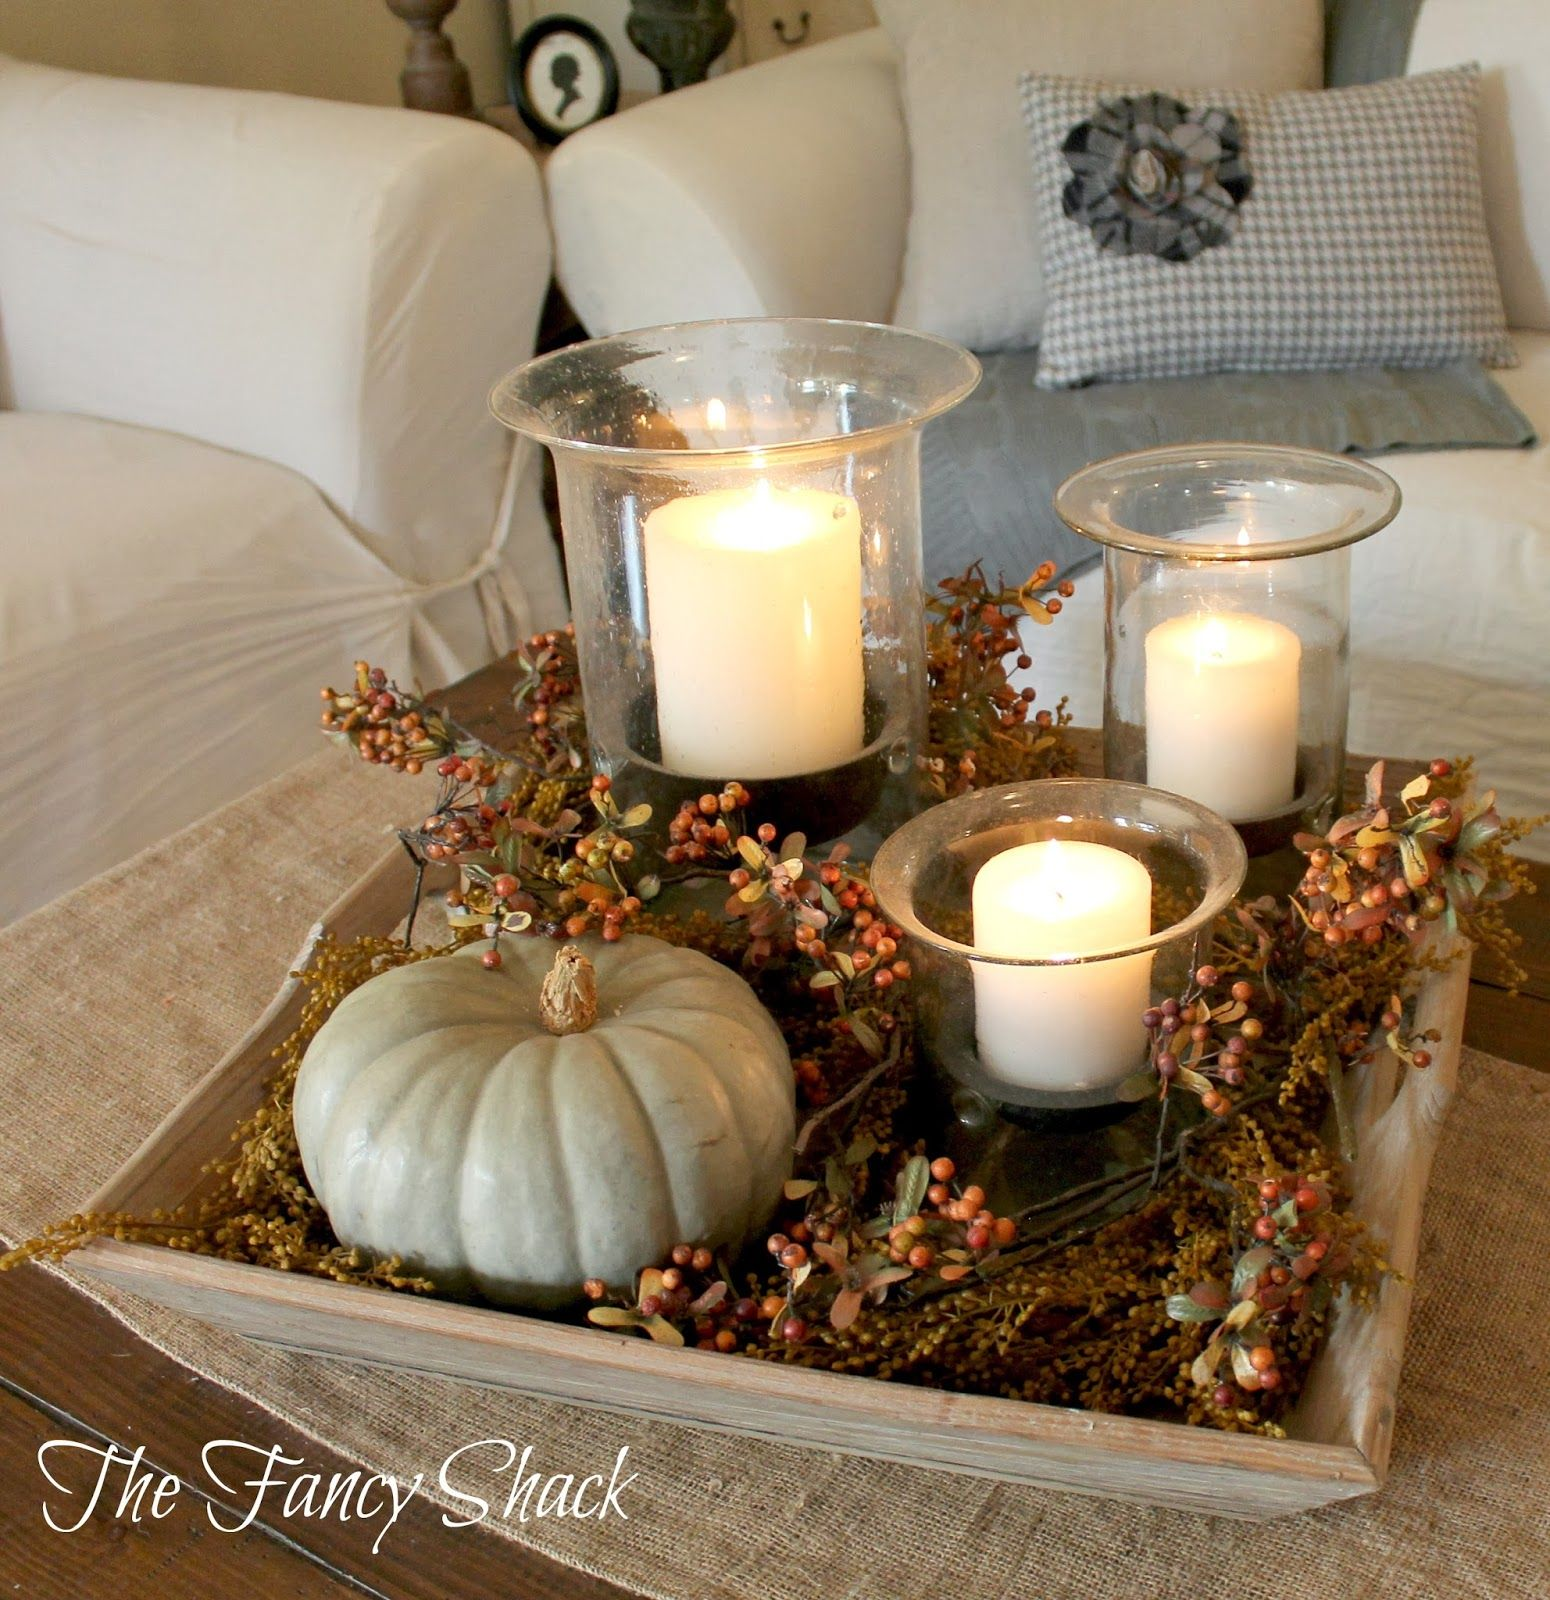 6 Ideas On How To Display Your Home Accessories: 30 Pretty Candle Decoration Ideas For Thanksgiving